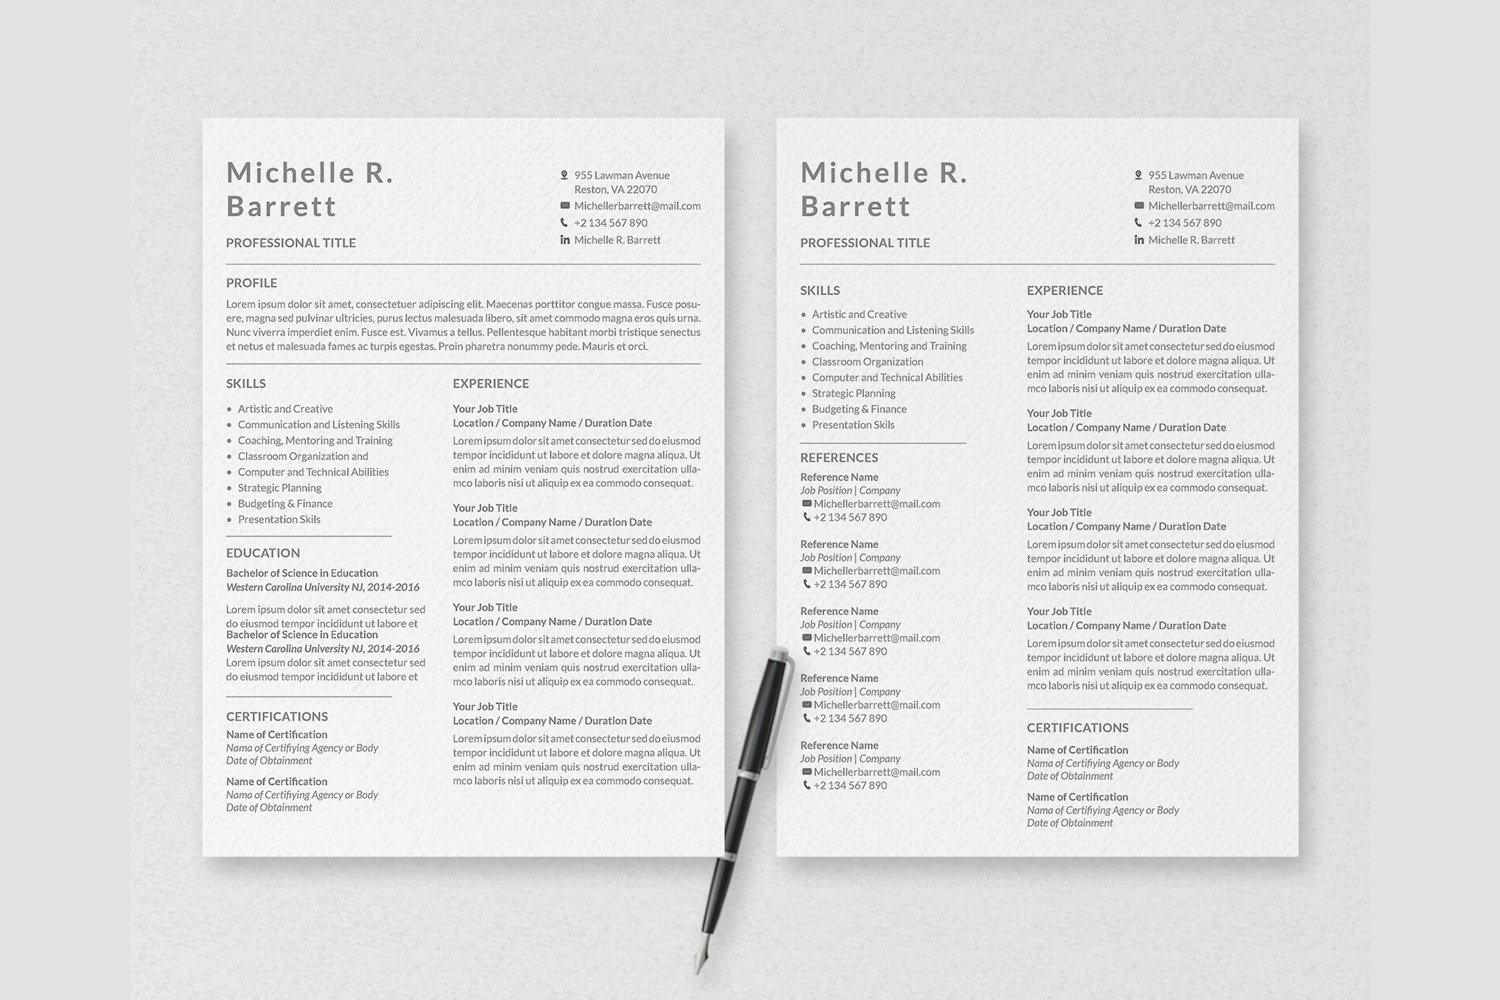 Professional Resume Templates example image 7